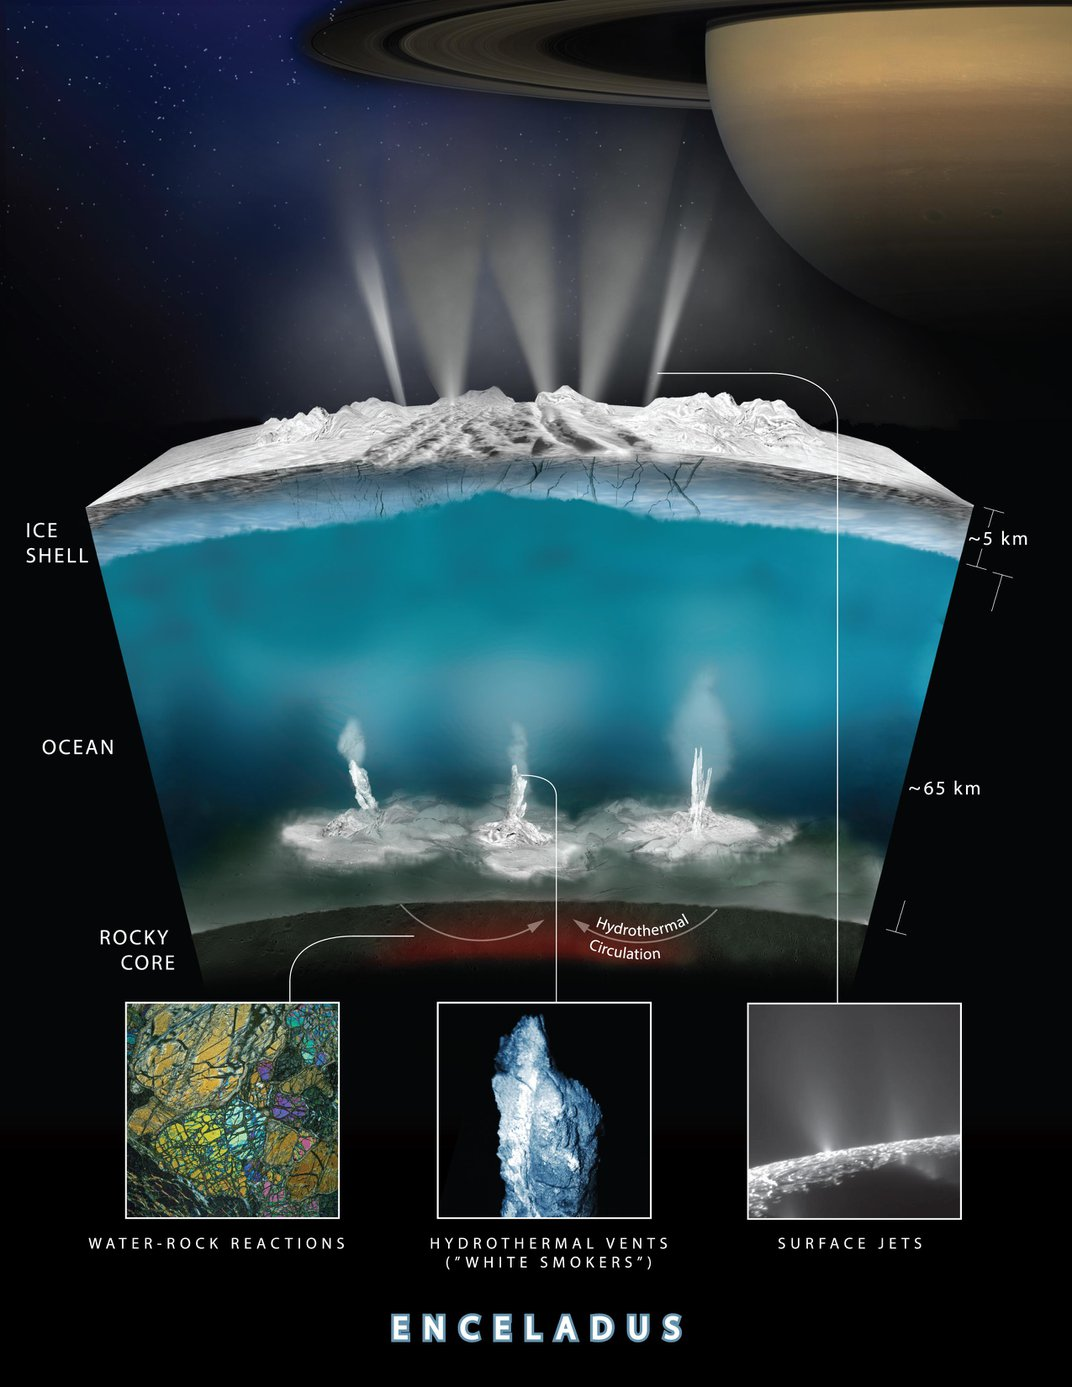 NASA Detects Microbe-Friendly Food Spouting From Saturn's Moon Enceladus